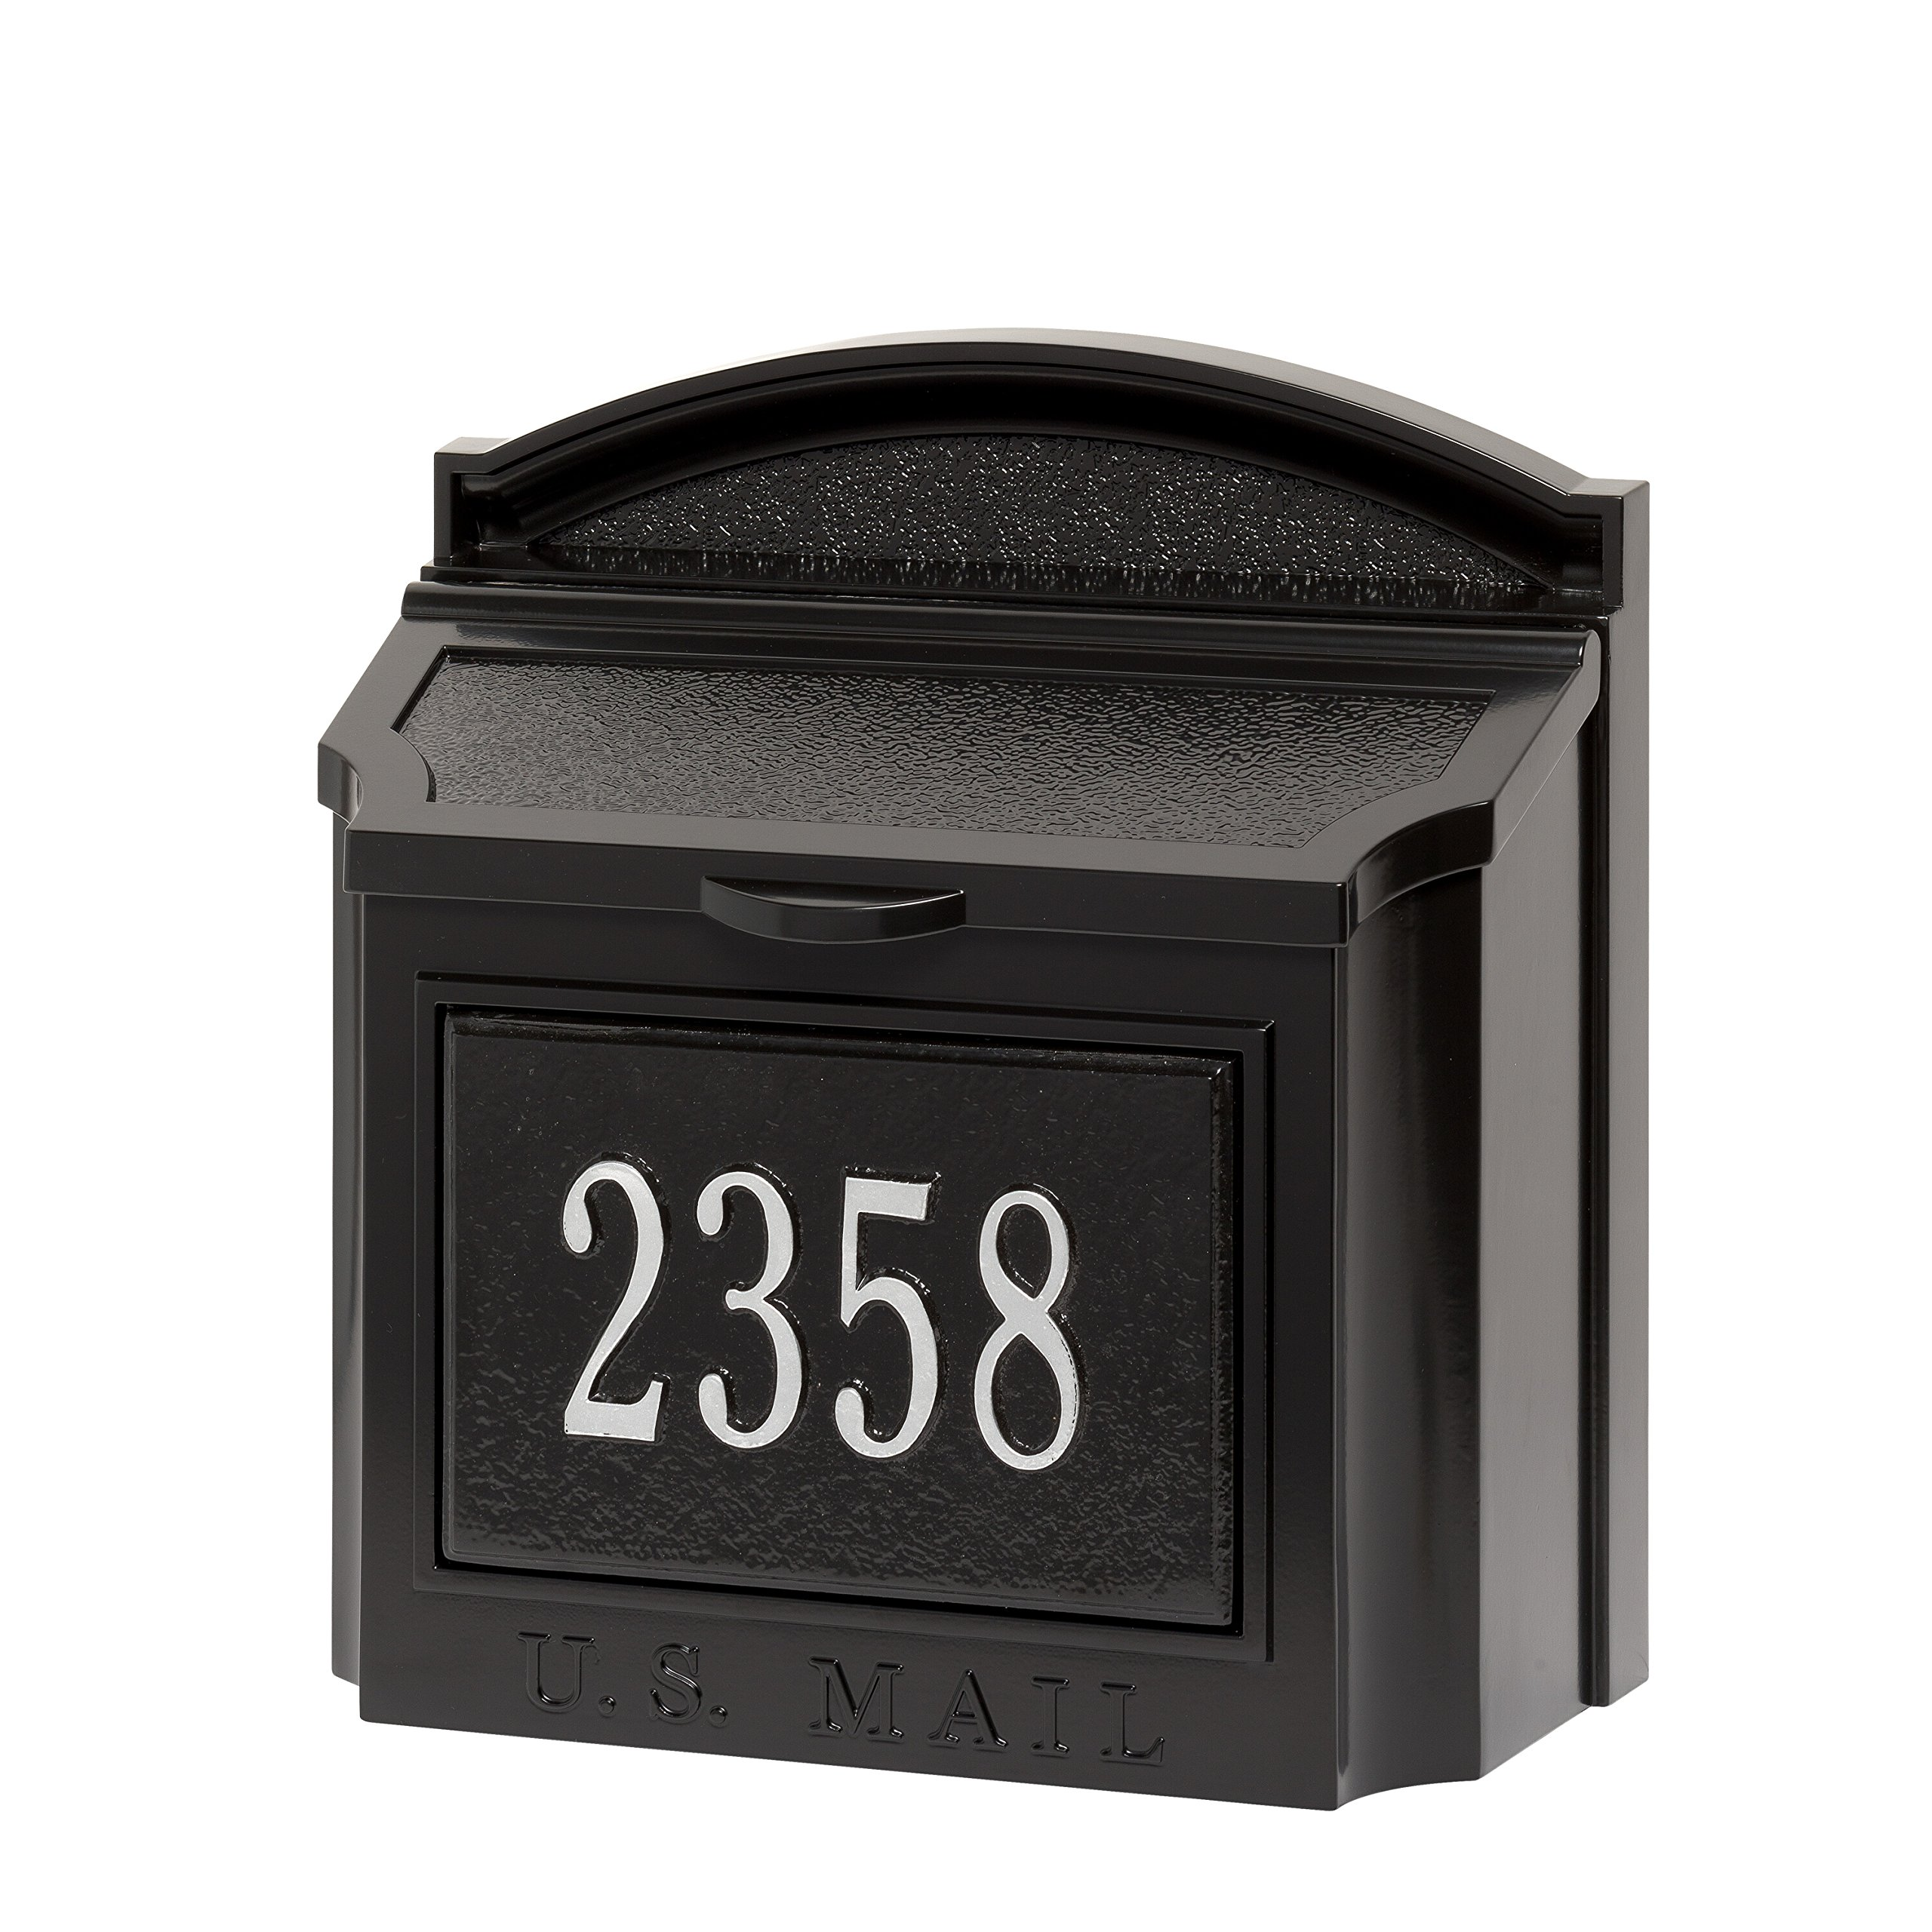 Customized Cast Aluminum Wall Mailbox AND Custom Address Numbers Plaque 15''H x 14.5''W x 8''D